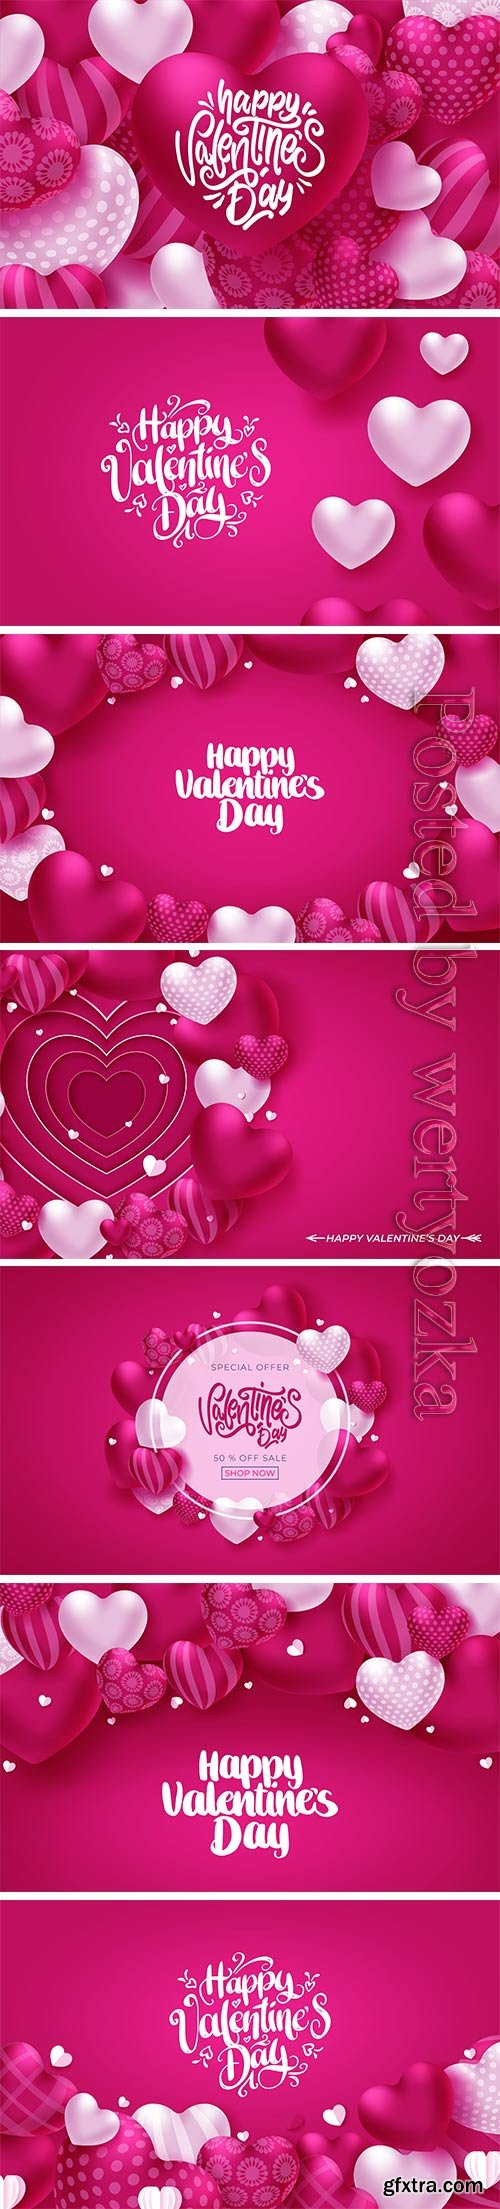 Colorful soft and smooth valentine greeting card with hearts